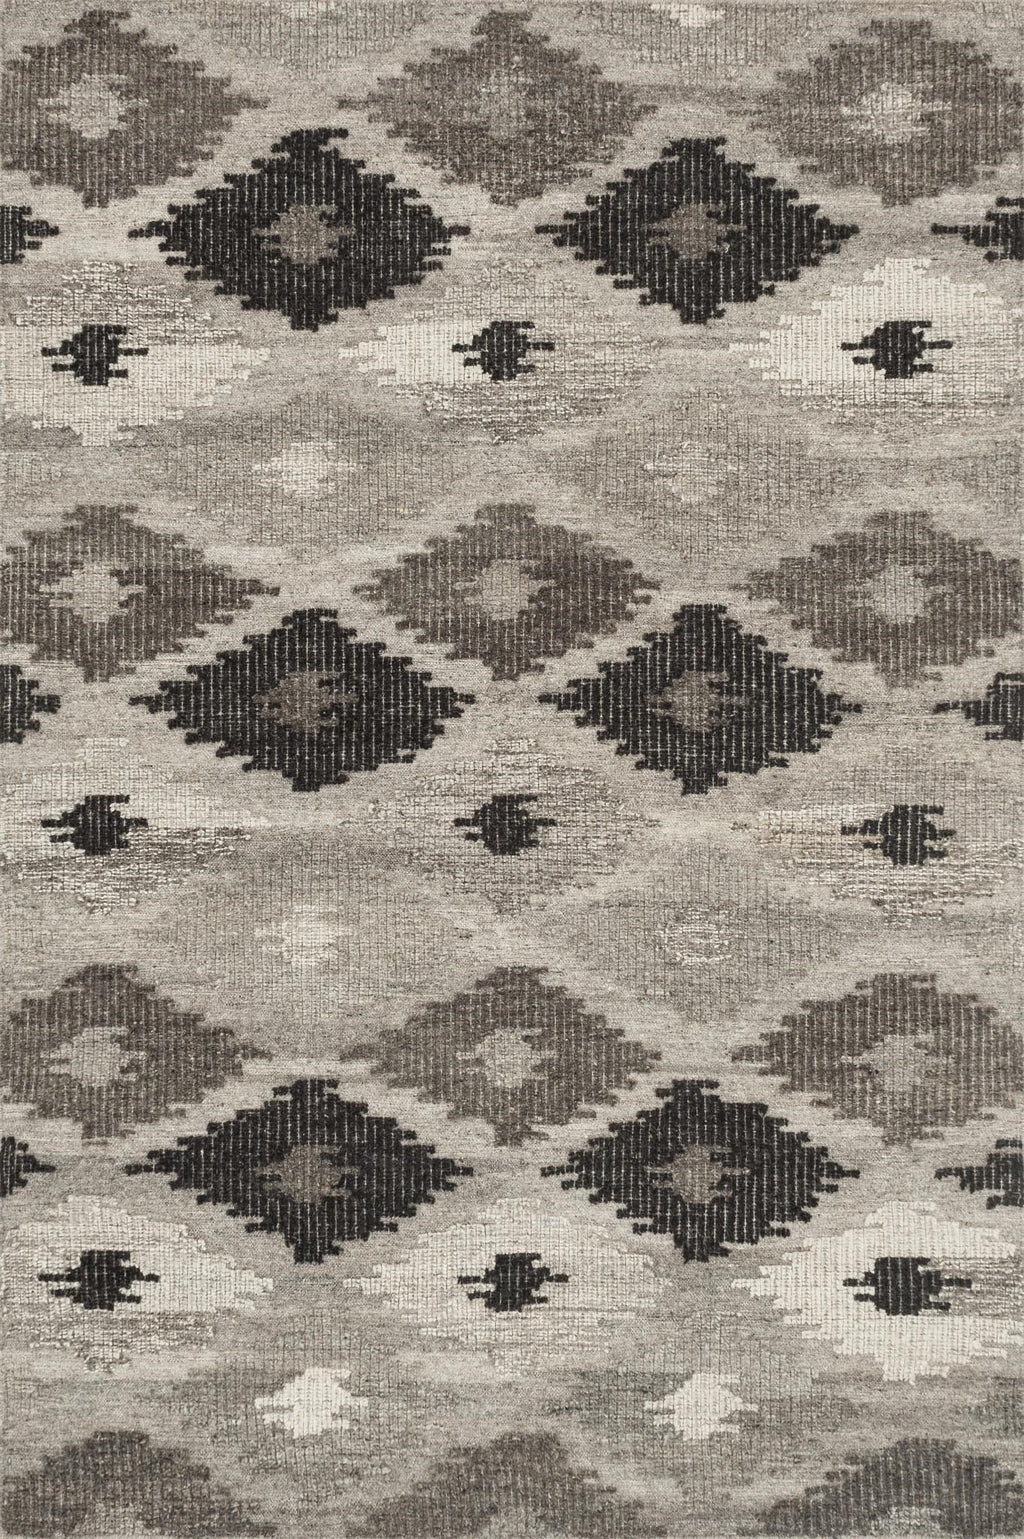 AKINA Collection Wool Rug  in  GREY / CHARCOAL Gray Small Hand-Woven Wool